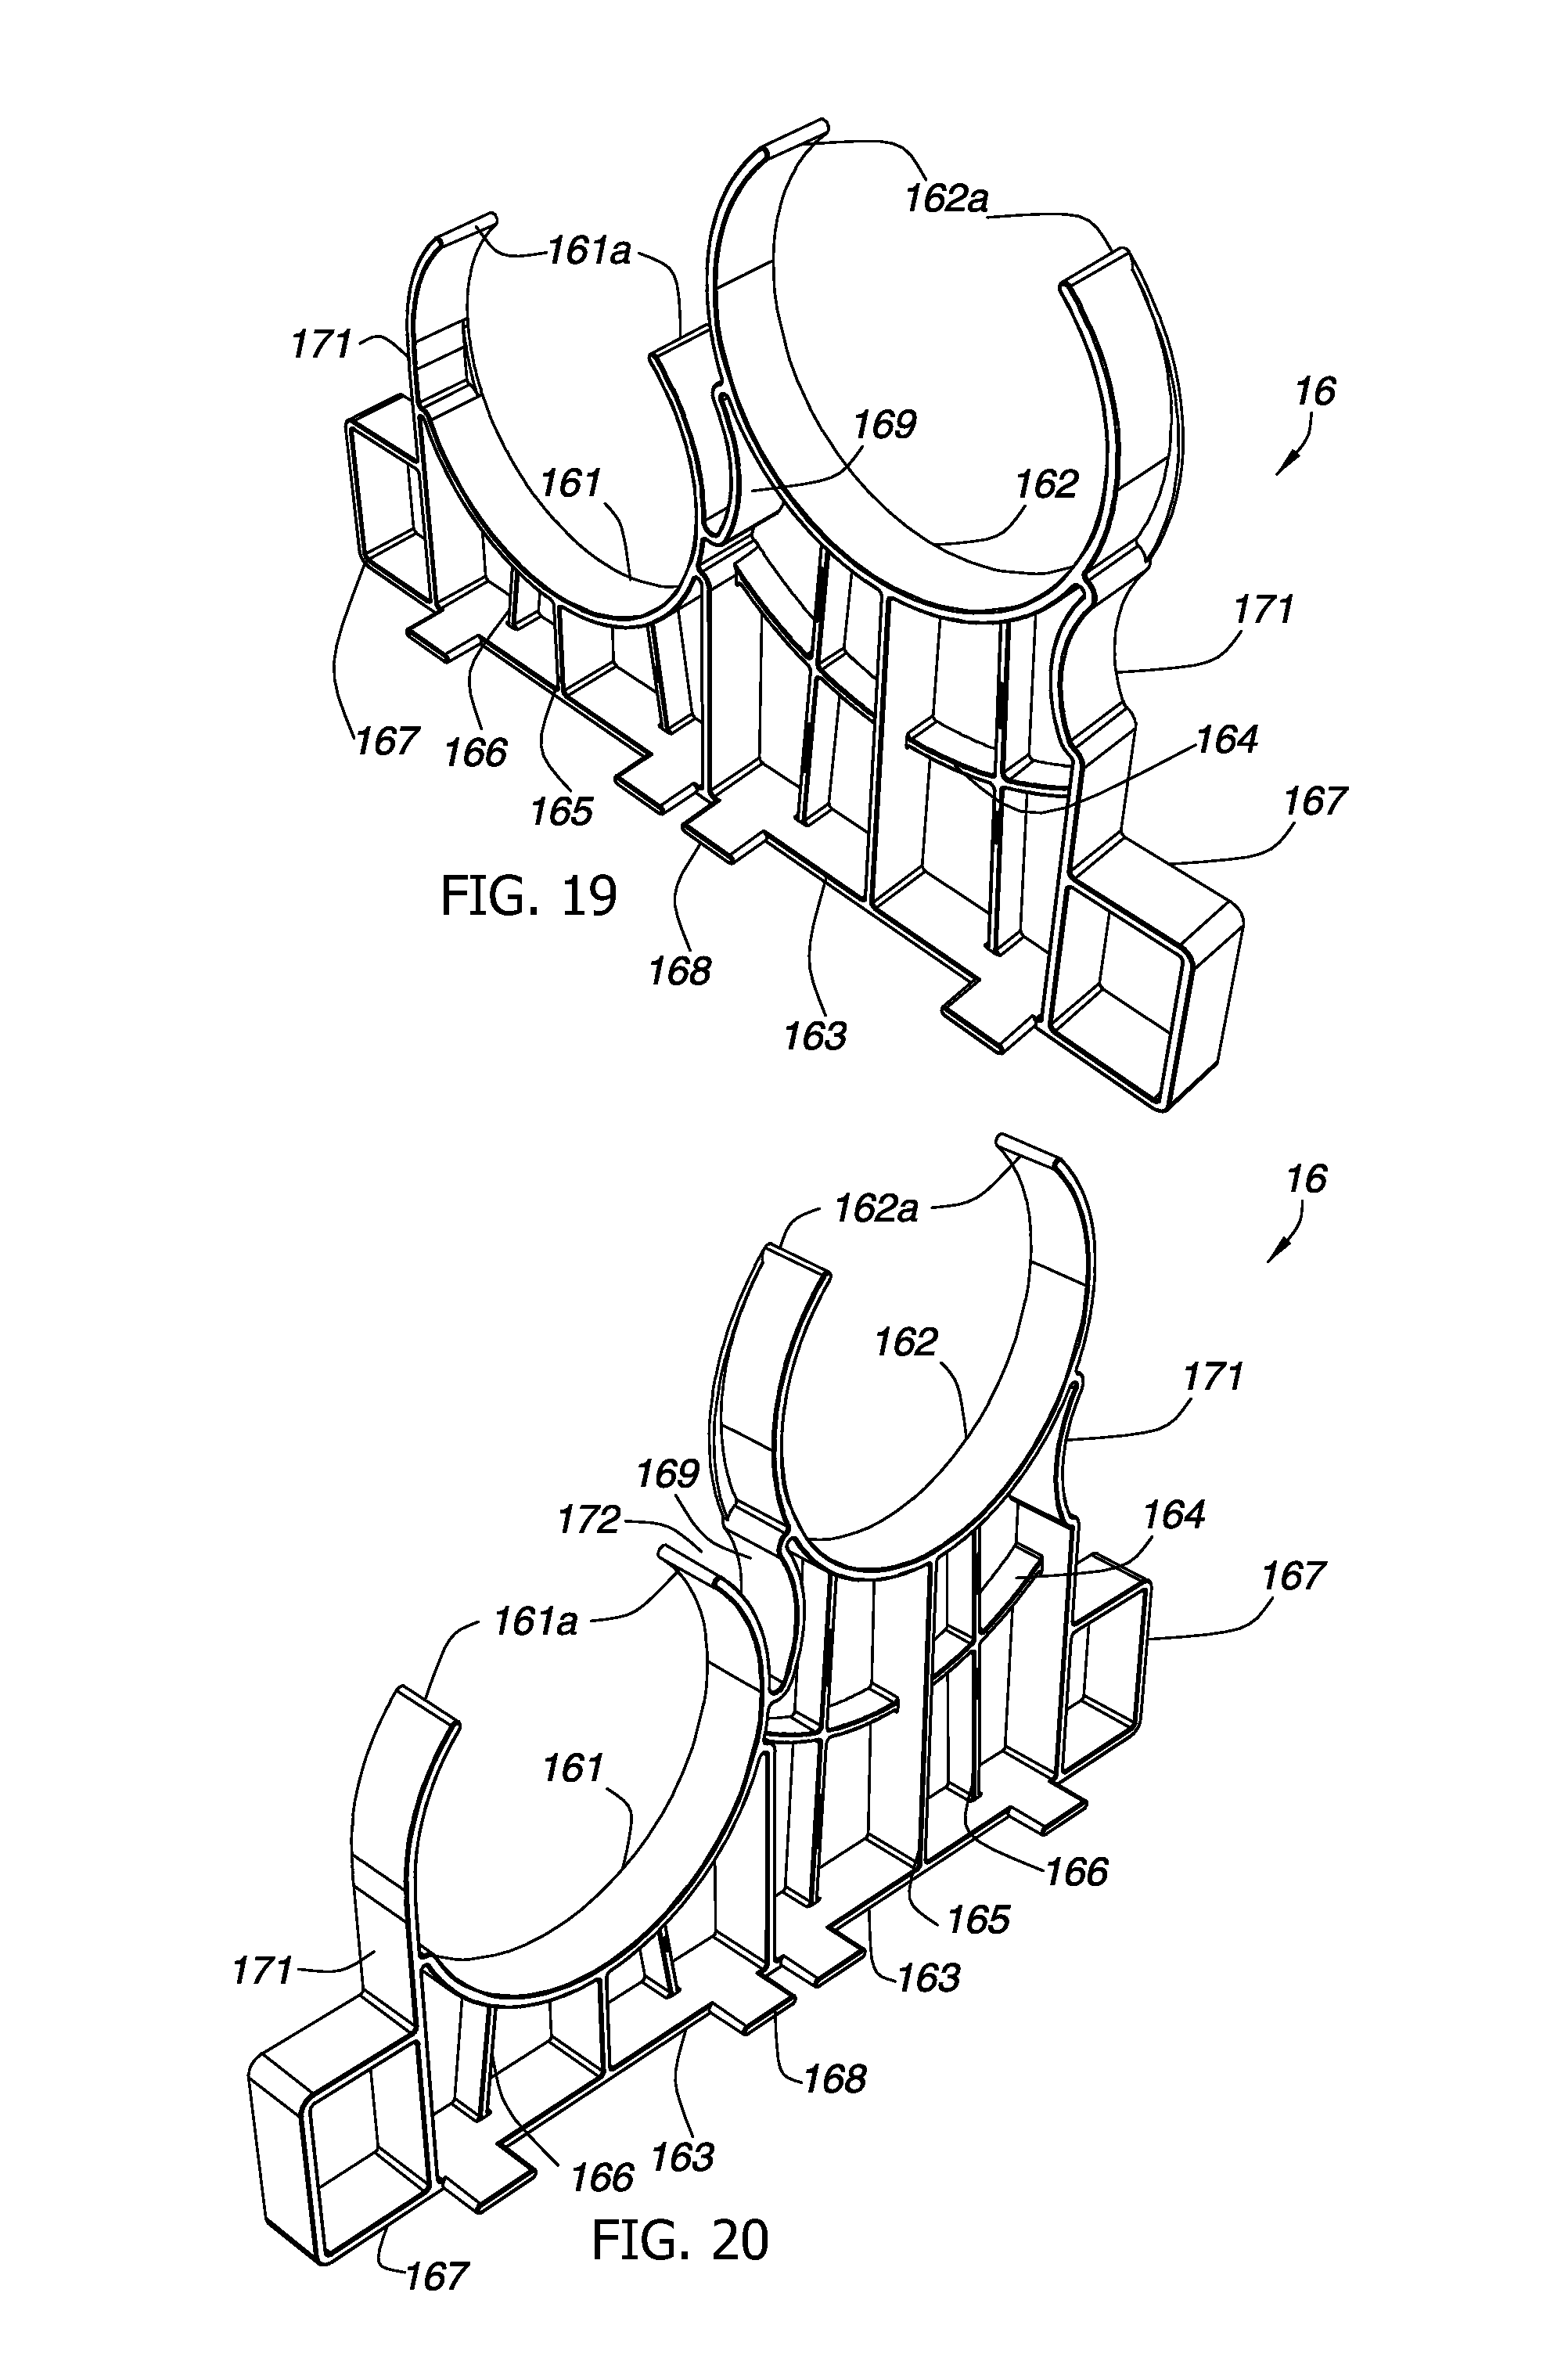 Low Emf Pact Duct Spacer Google Patents On Underground Wiring Conduit